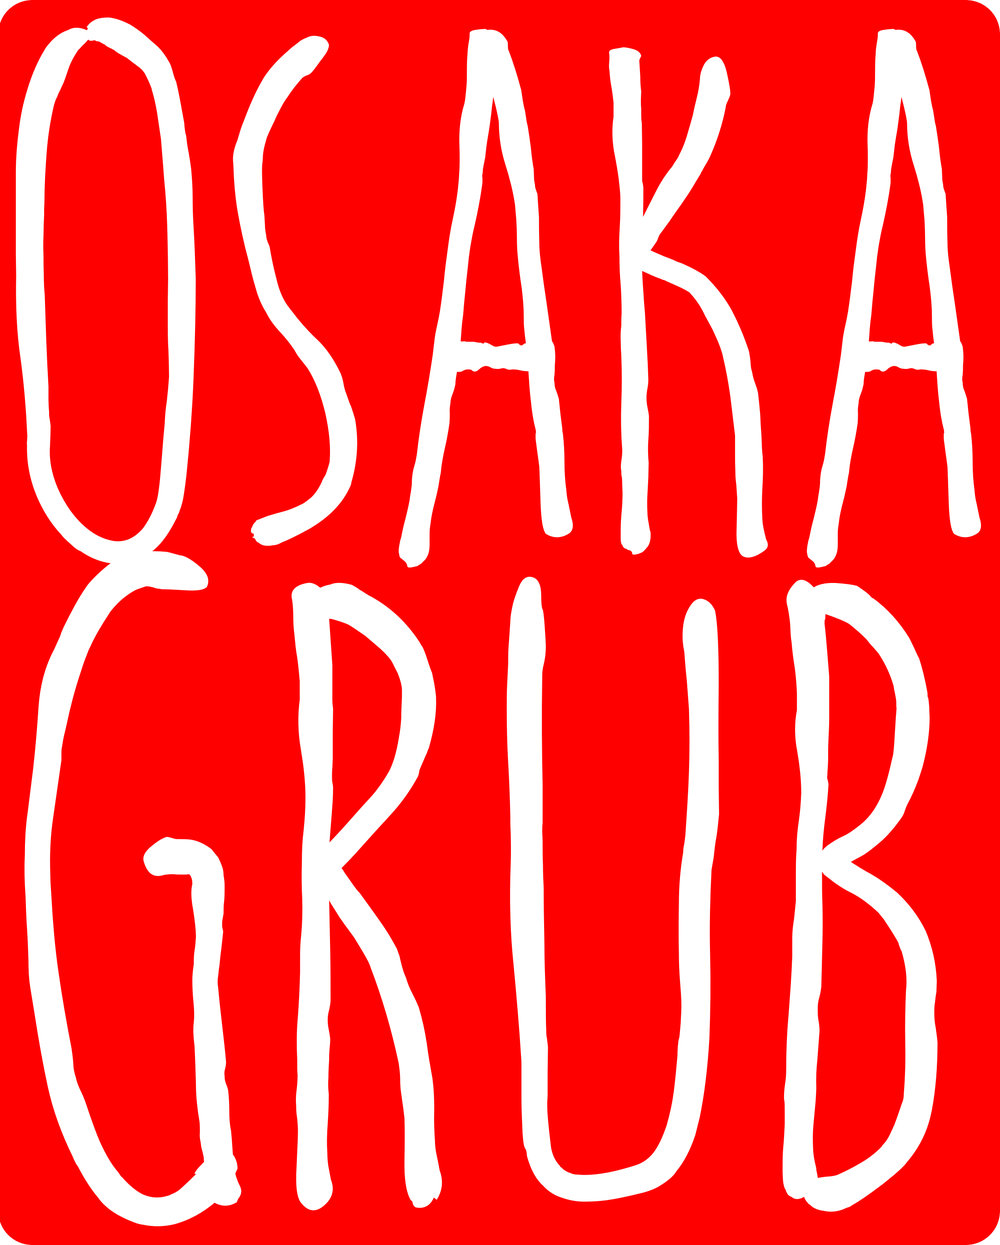 Osaka Grub puts an inventive spin on okonomiyaki (Japanese cabbage based pancake) as well as traditional Japanese street food. The owners lived in Tokyo for a collective 8 years and are bringing their innovative culinary creations to Rockaway Brewing Co. this Saturday from 3pm-9pm!   Insta/FB/twitter: @OsakaGrub